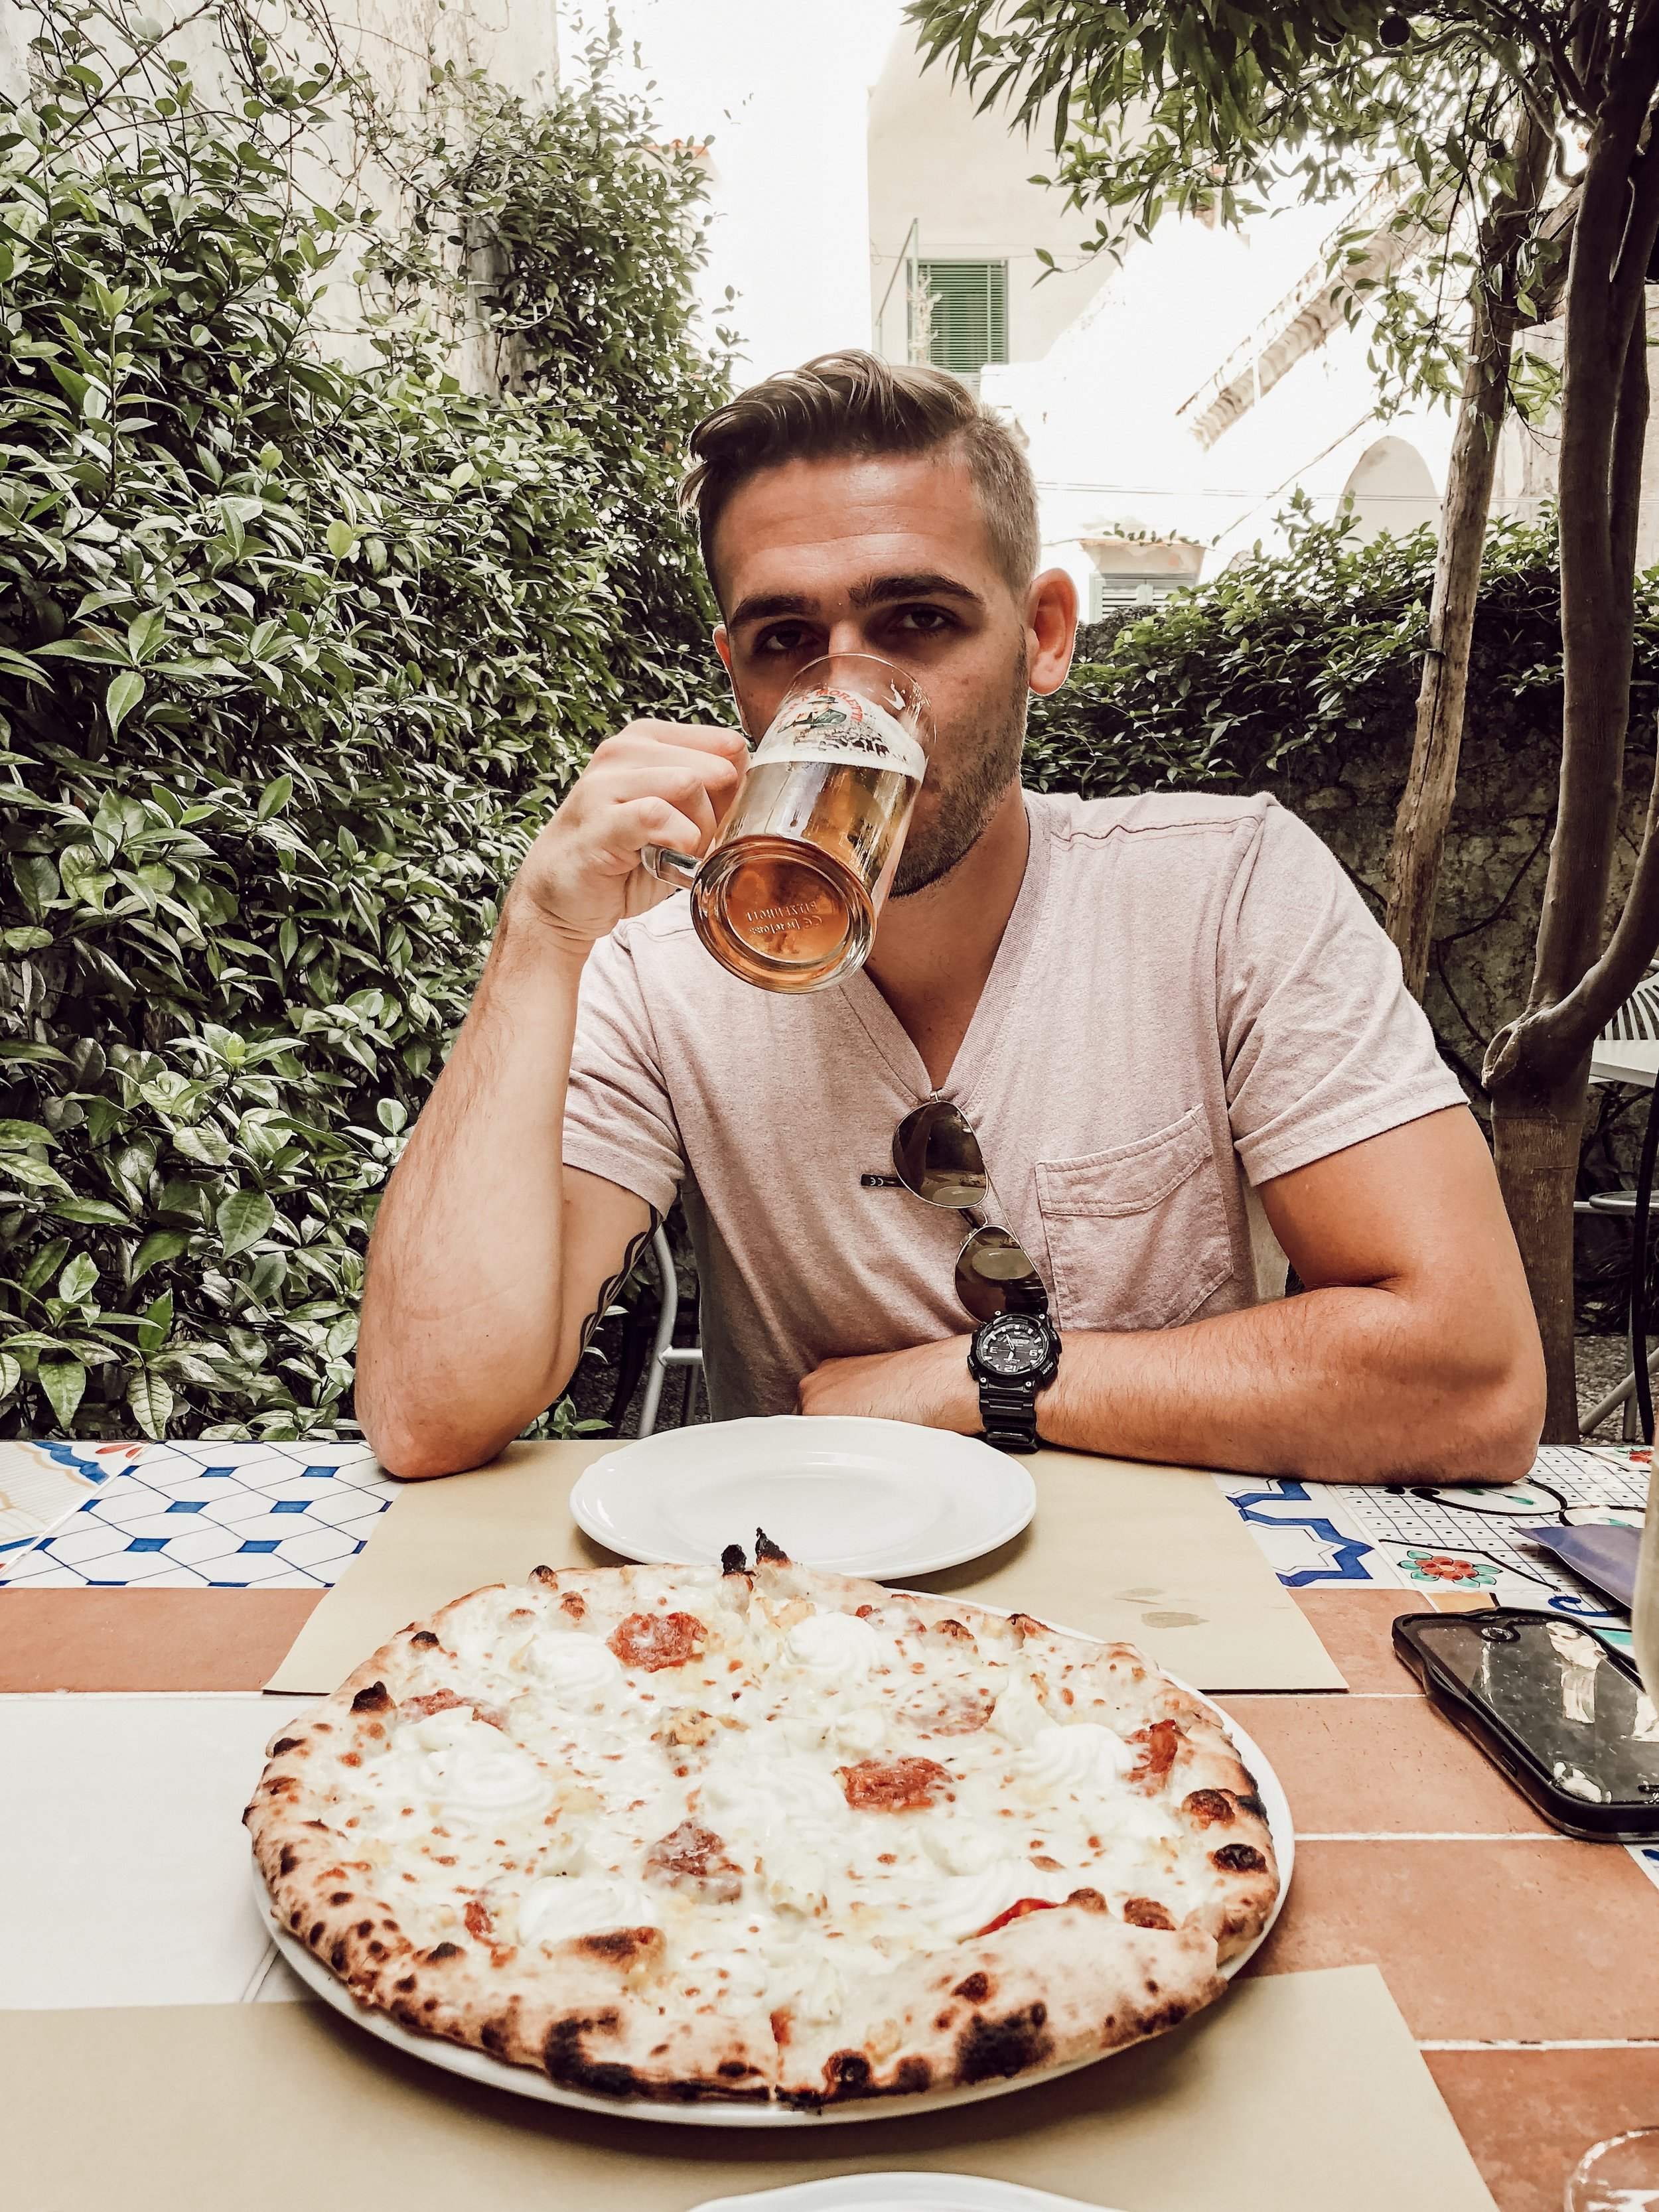 Donnastella Pizzeria and Lemon Garden Beer and Pizza | Three Days on the Amalfi Coast, Amalfi Travel Guide, What to Do in Amalfi Italy | Miranda Schroeder Blog